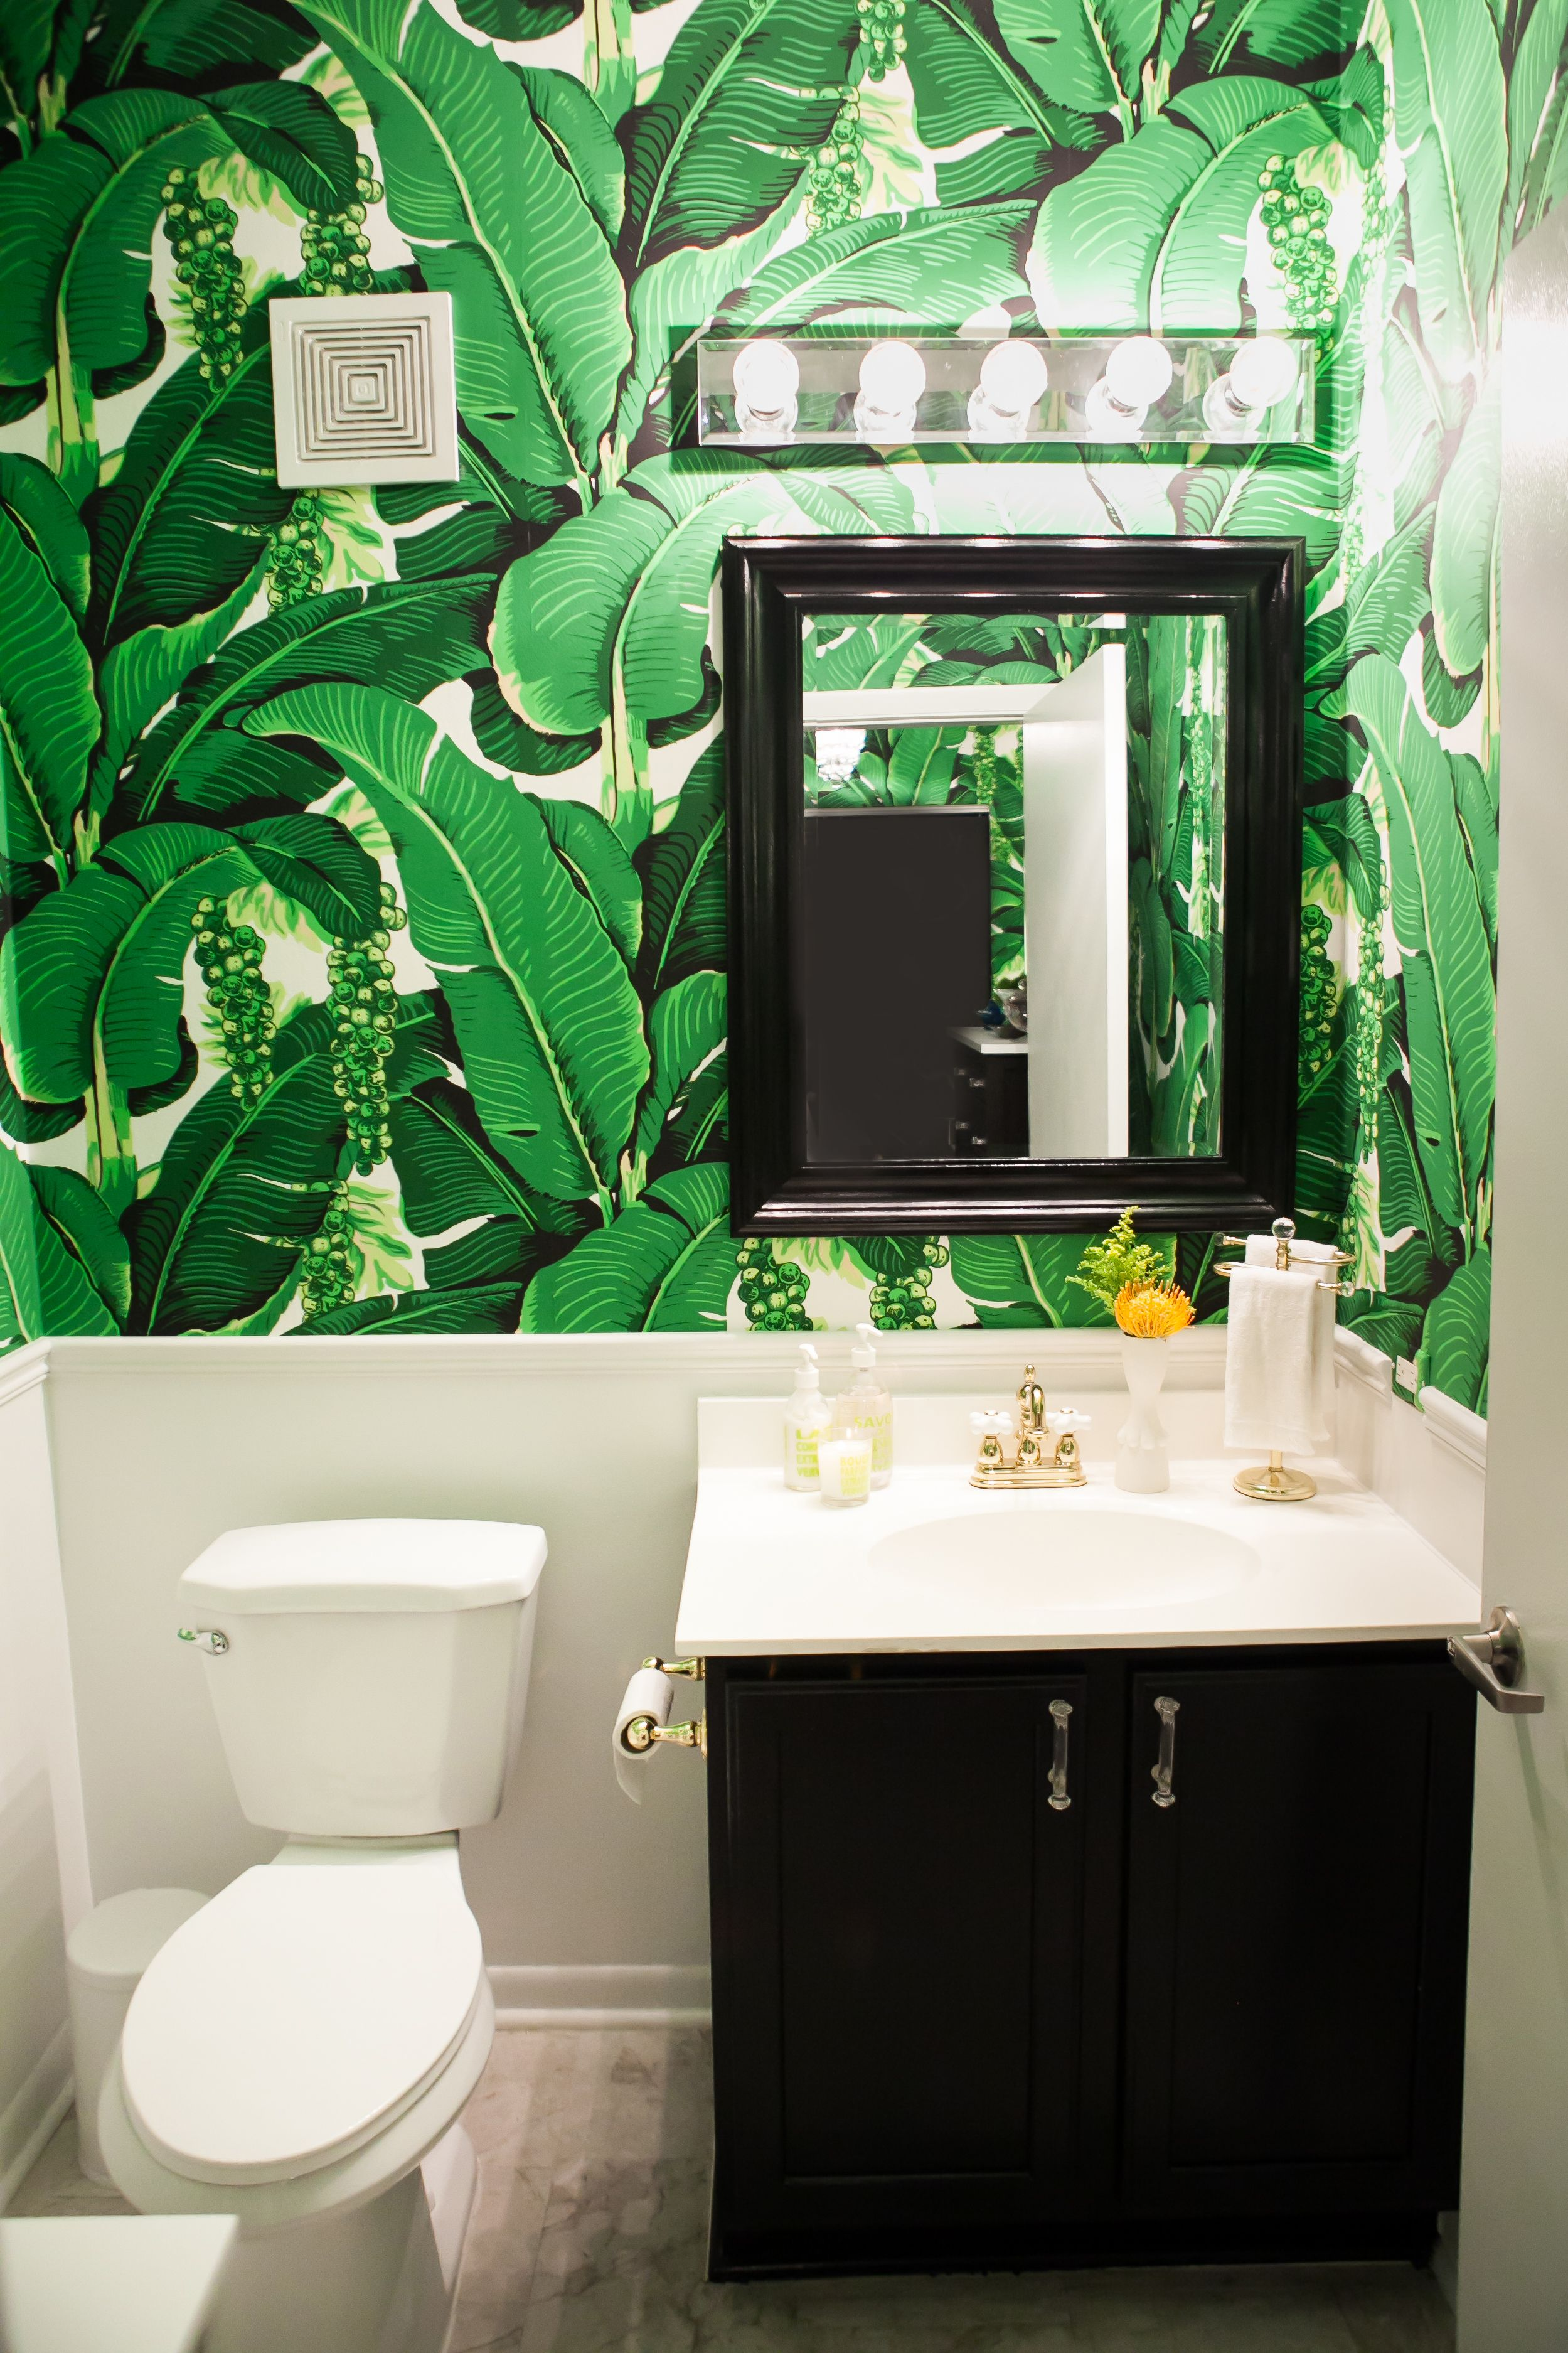 Amelia Canham Eatons Chicago Apartment Banana Leaves Leaves - Wallpaper borders for bathrooms for bathroom decor ideas